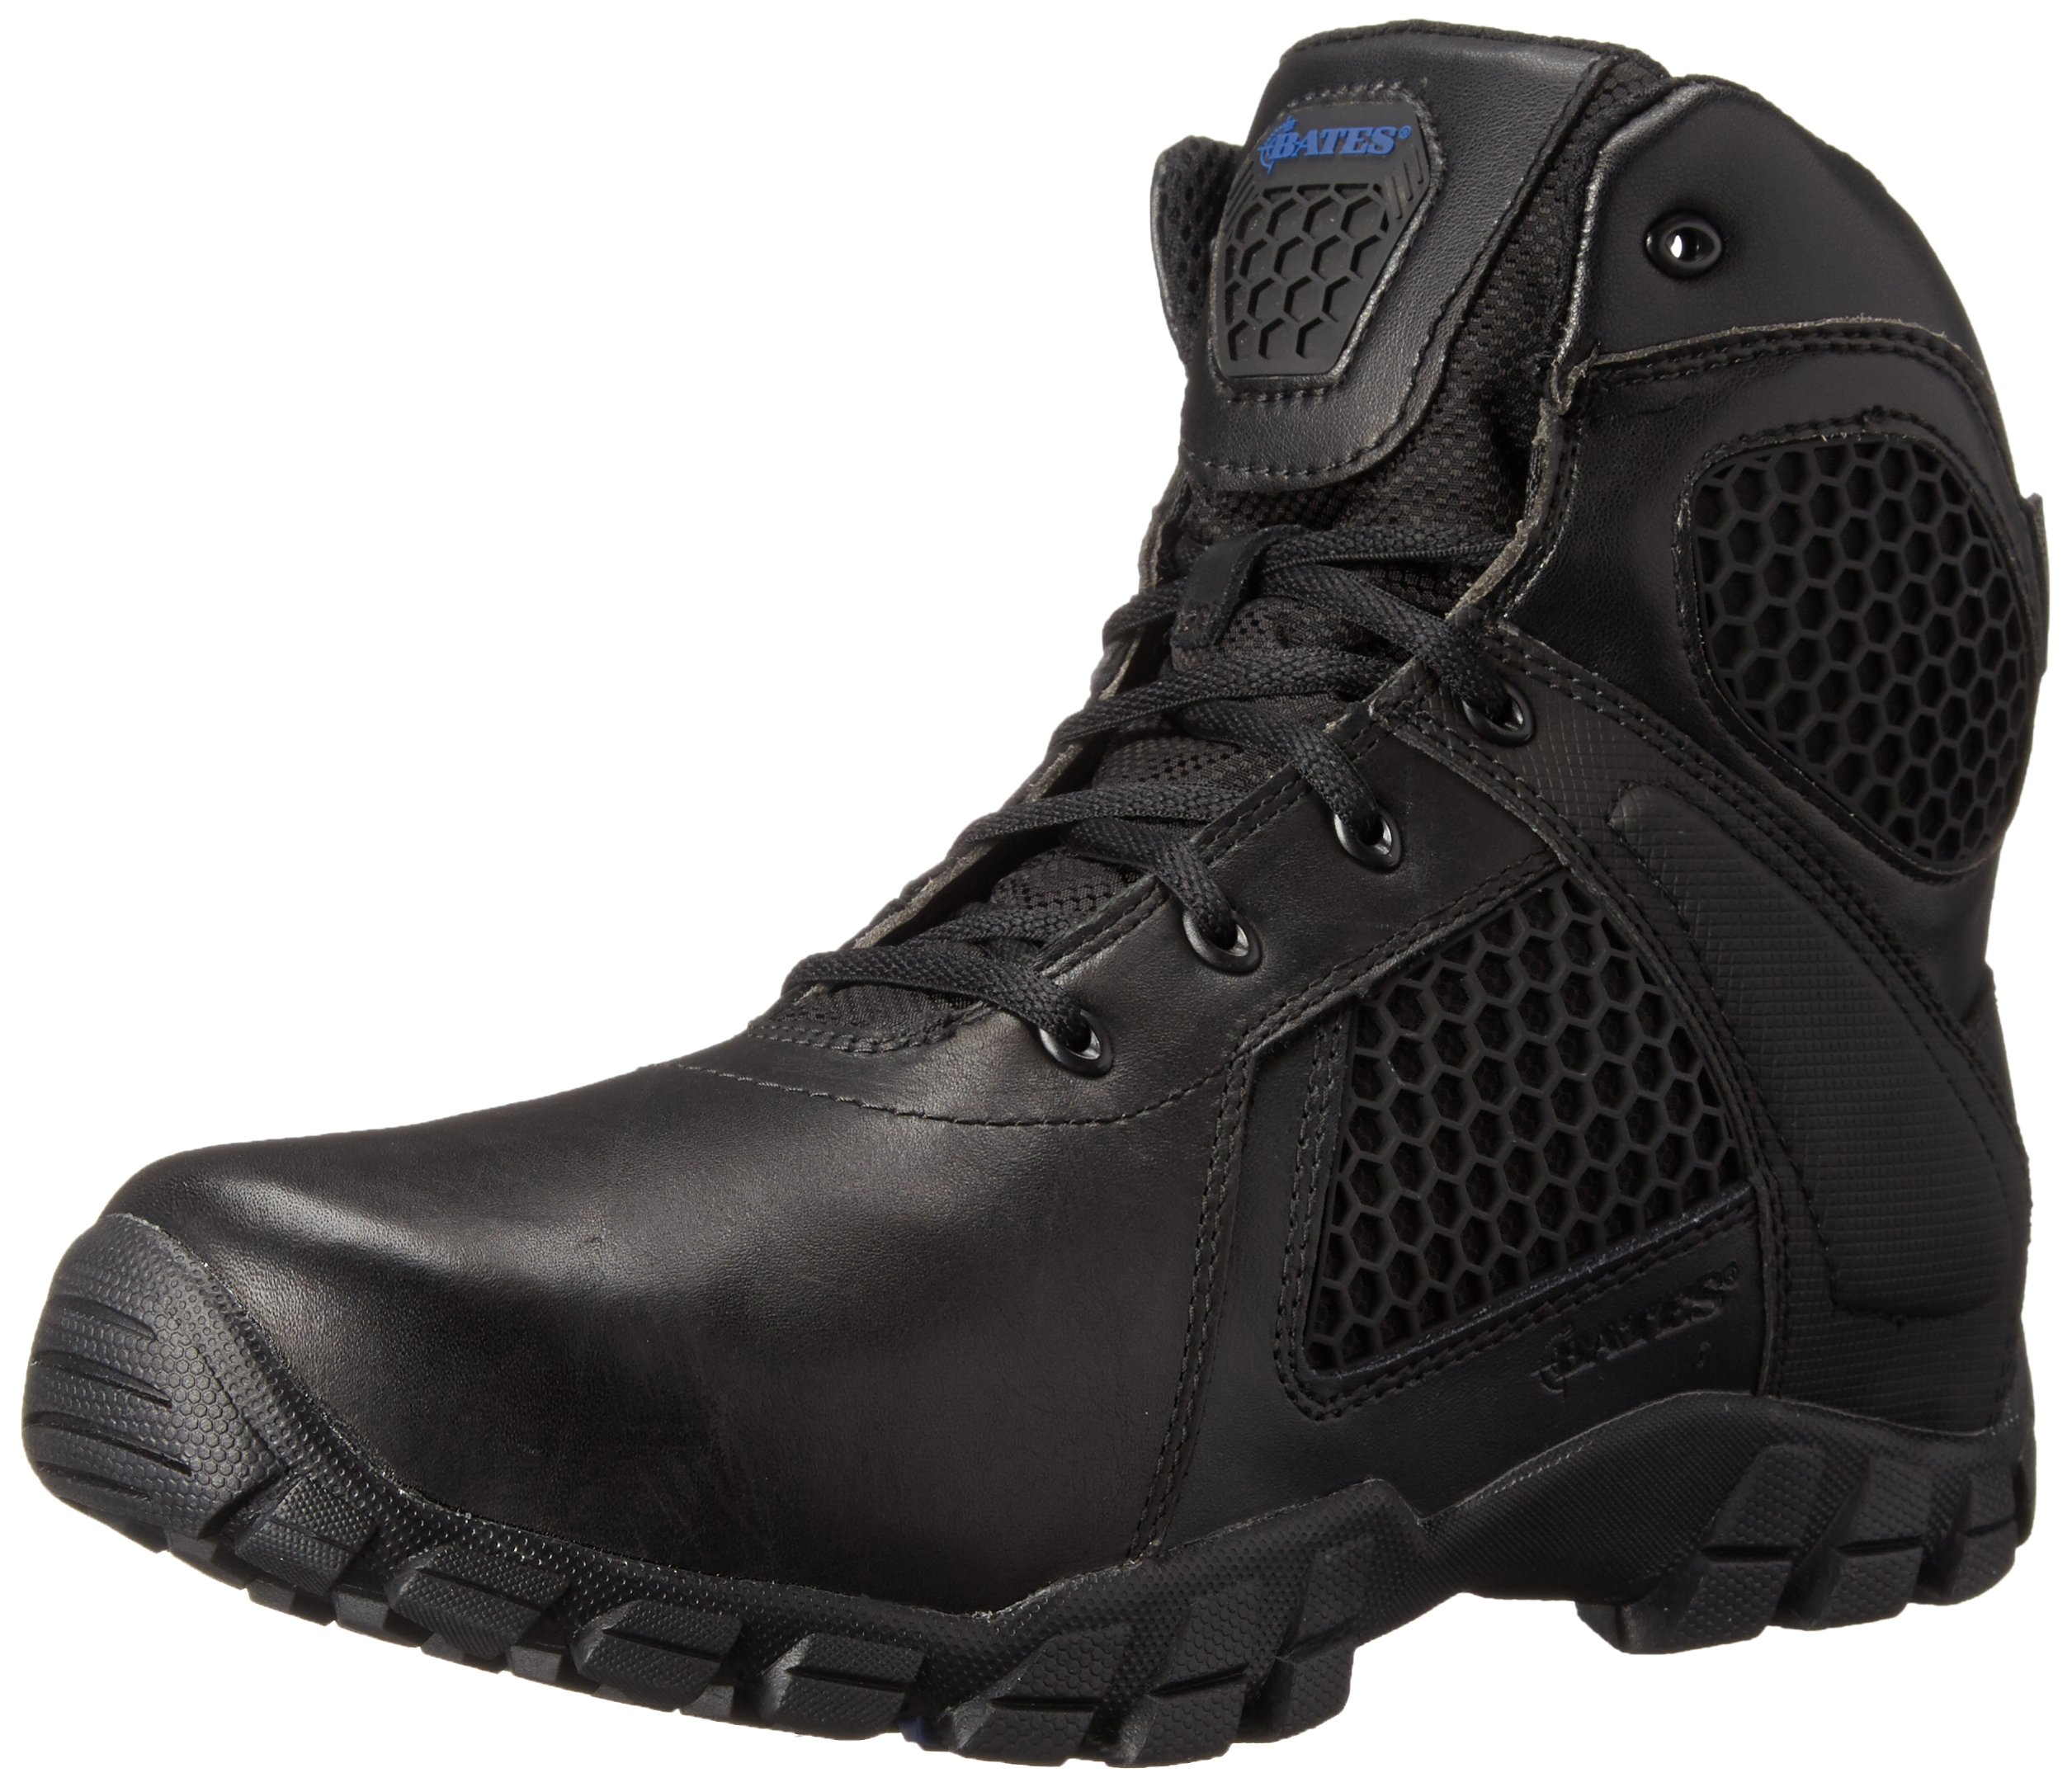 Bates Men's 6 inch Strike Side Zip Waterproof Tactical Boot, Black, 10 XW US